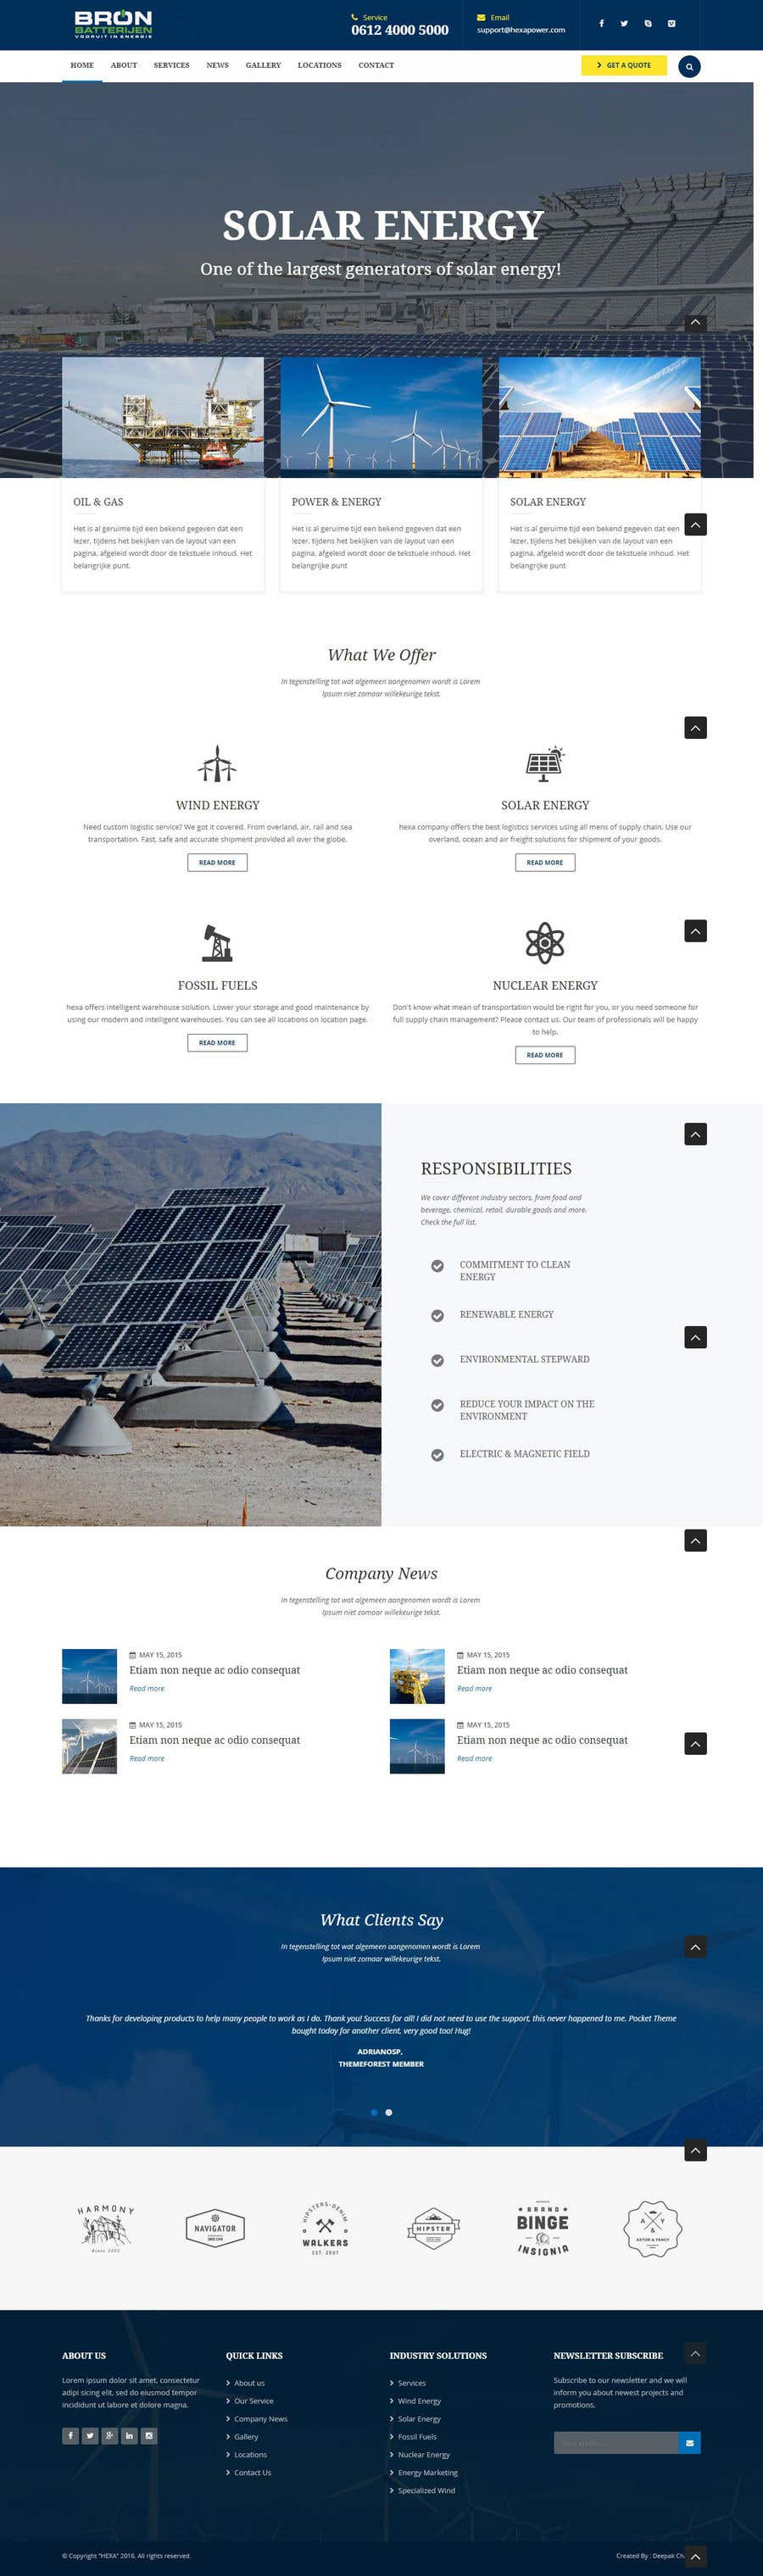 Penyertaan Peraduan #50 untuk wordpress theme design for battery and lighting subject